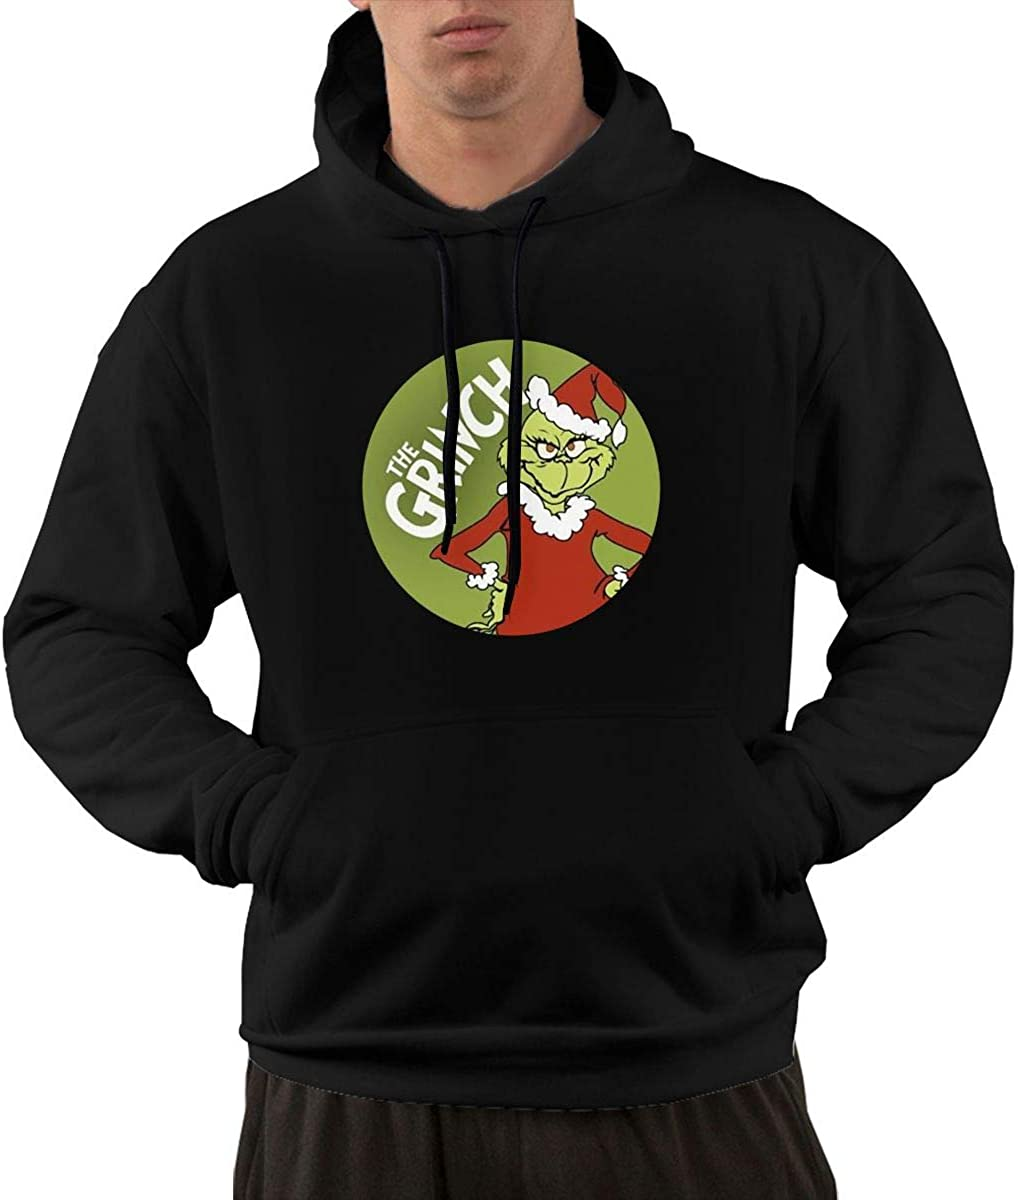 Hooded Sweater Sweatshirt for Mens 8 Wokeyia Black Warm The Grinch